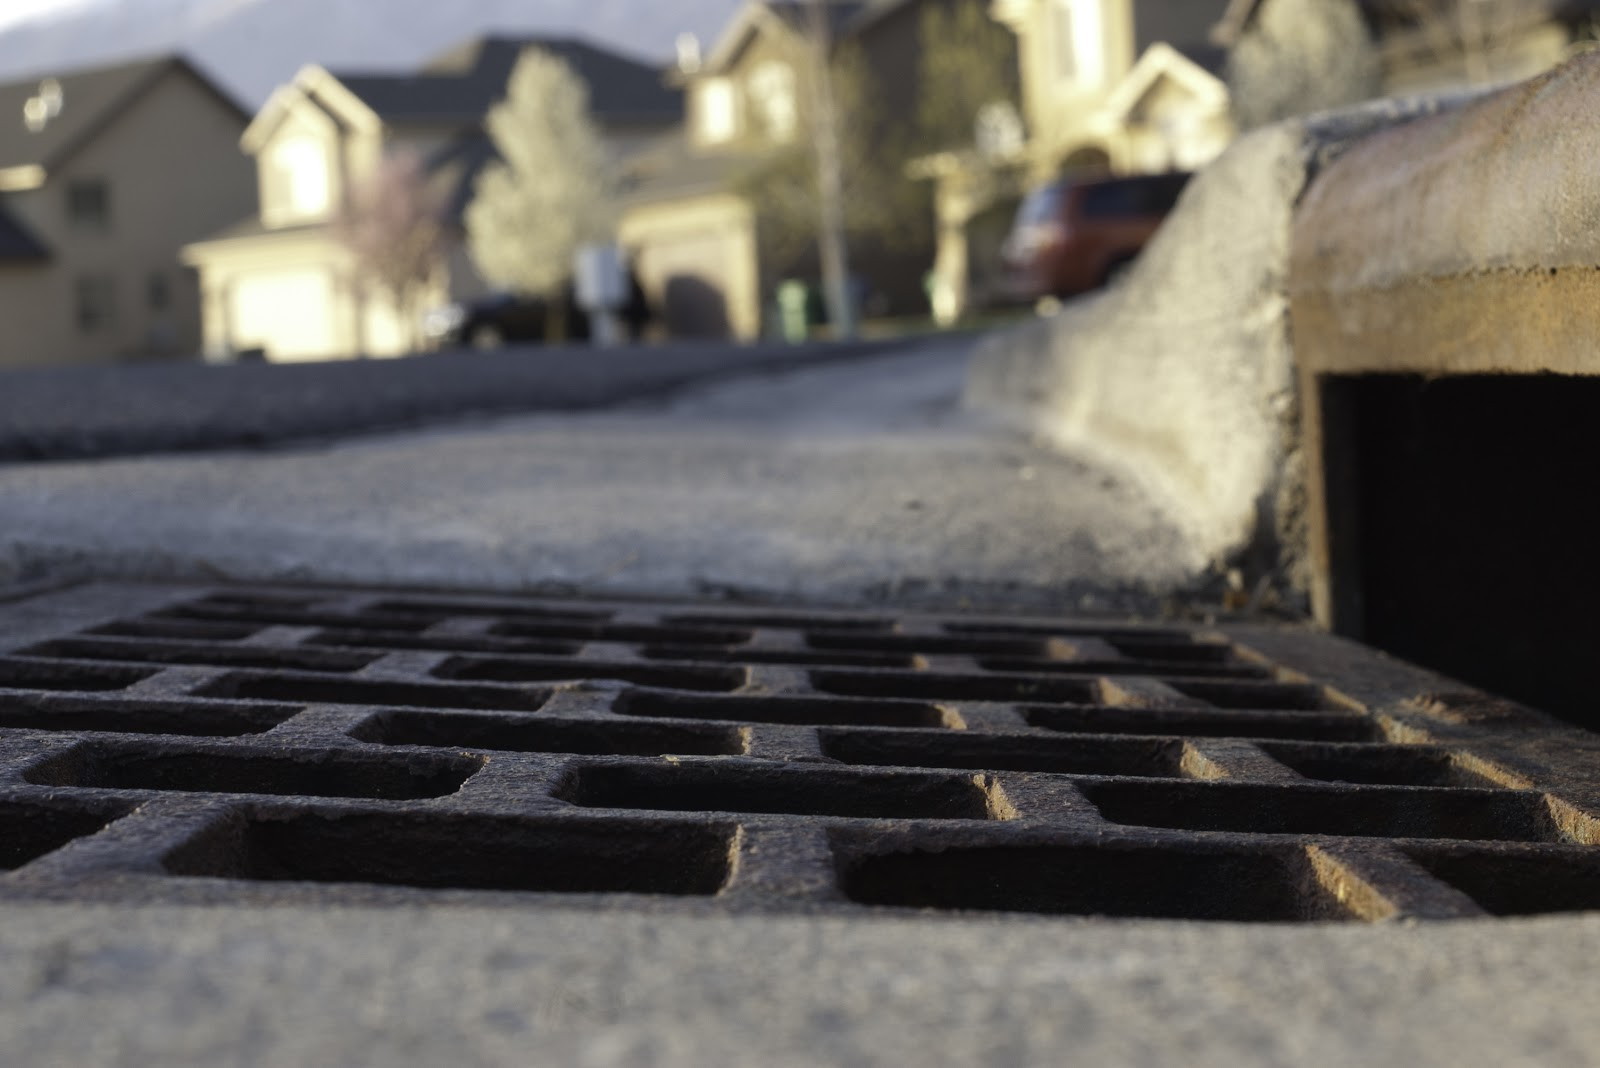 a storm drain with a drainage grate on a curb in a suburban neighborhood